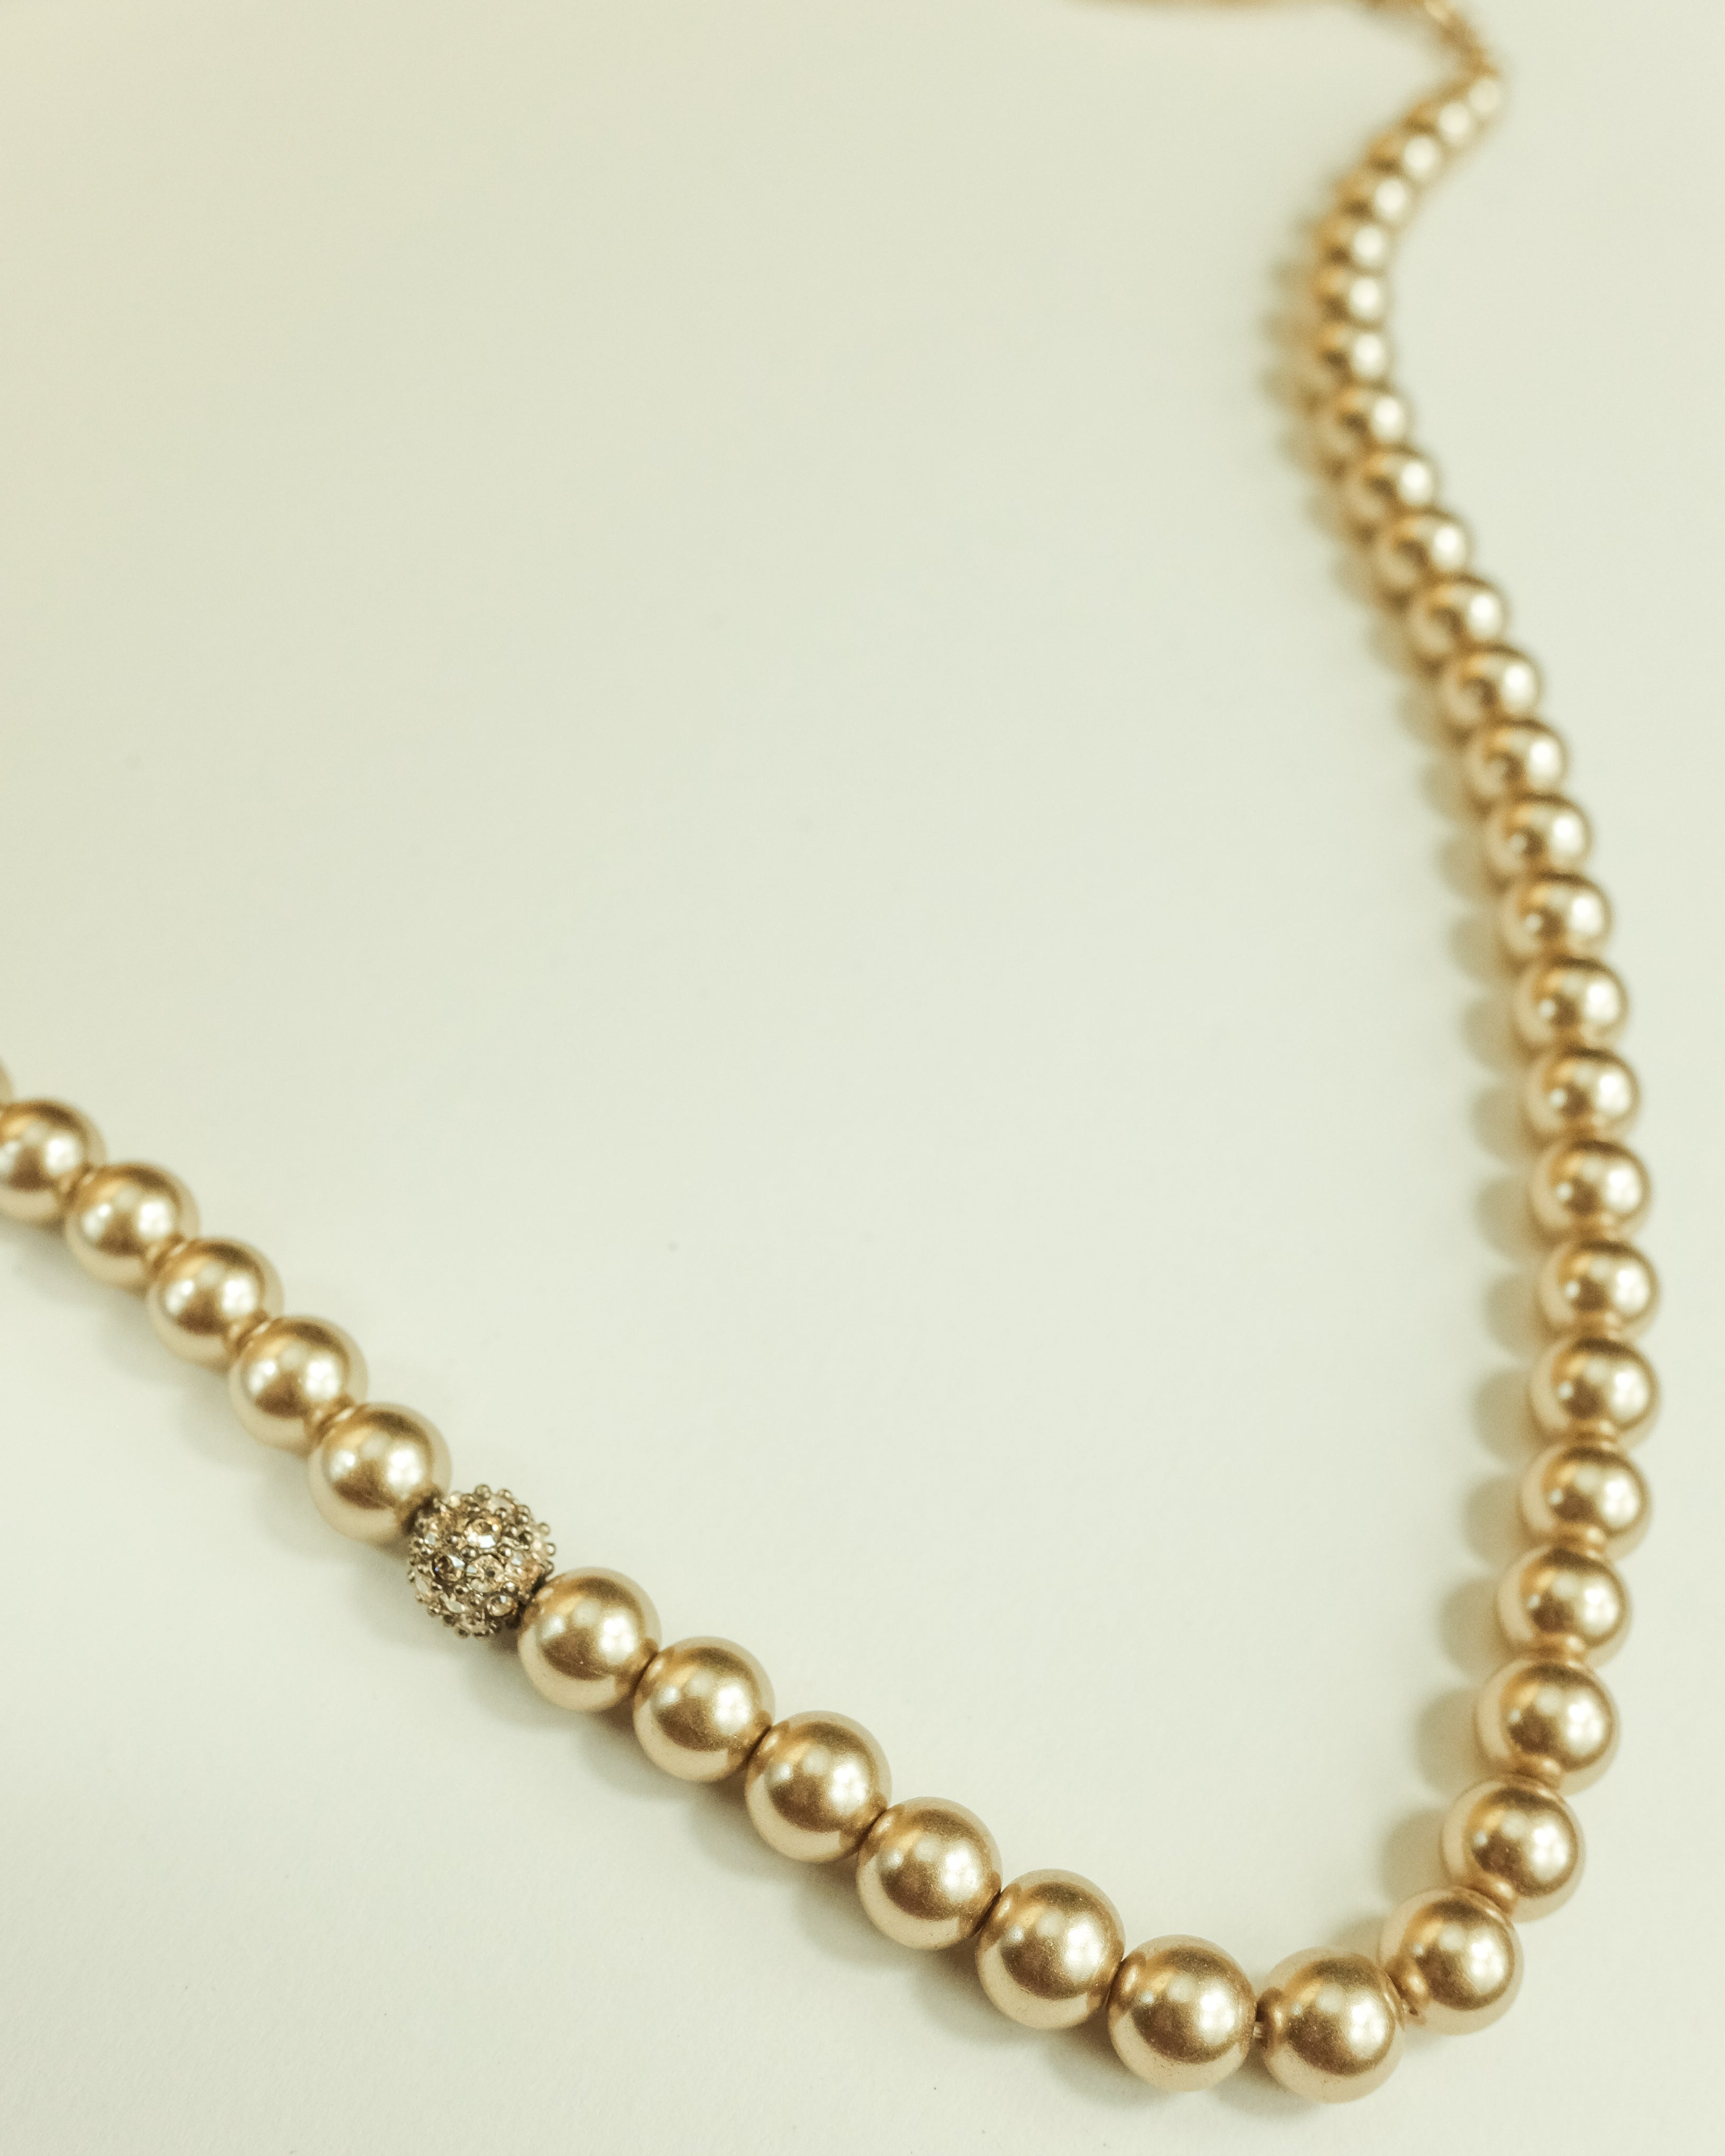 VINTAGE GIVENCHY DARK CHAMPAGNE PEARL NECKLACE